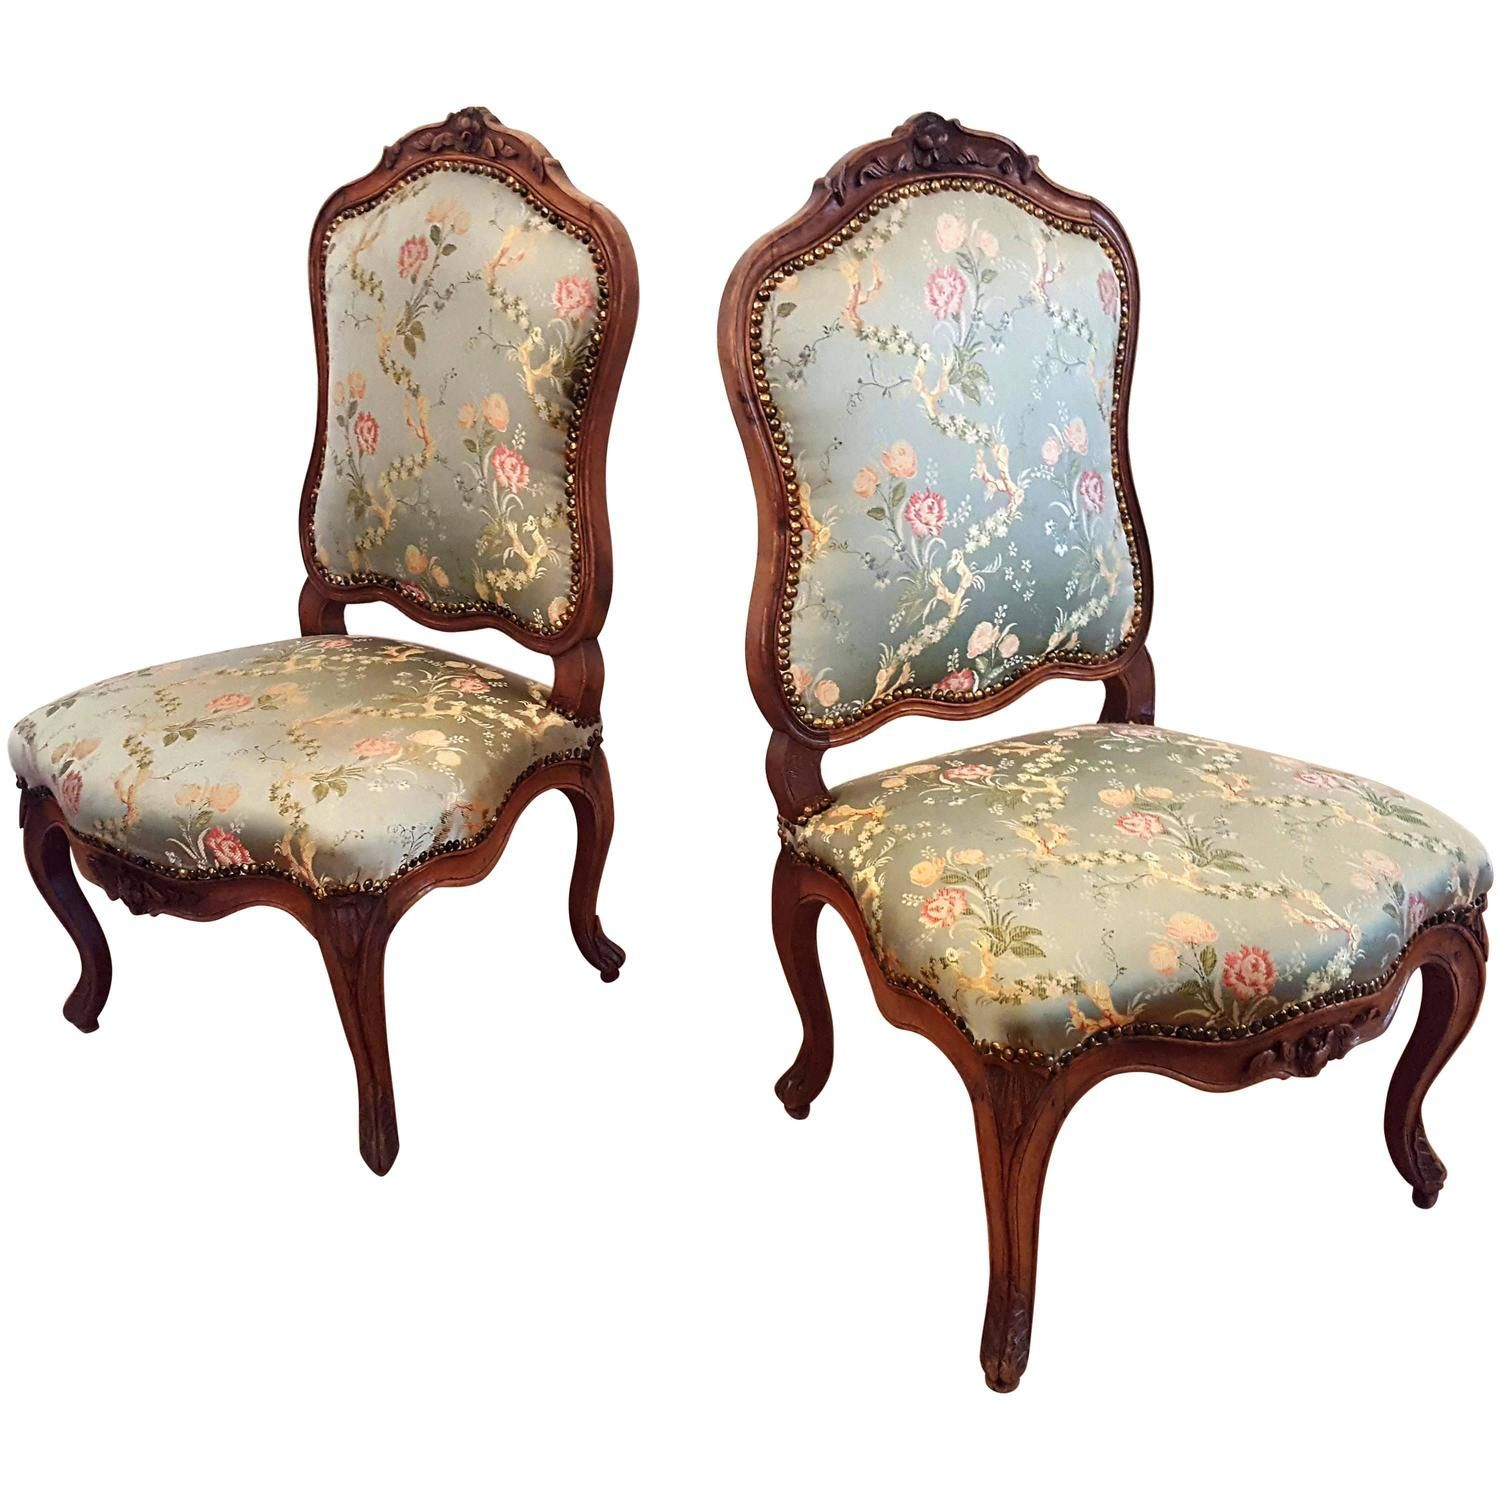 Fine Pair French Carved Walnut Rococo Chairs Nogaret silk